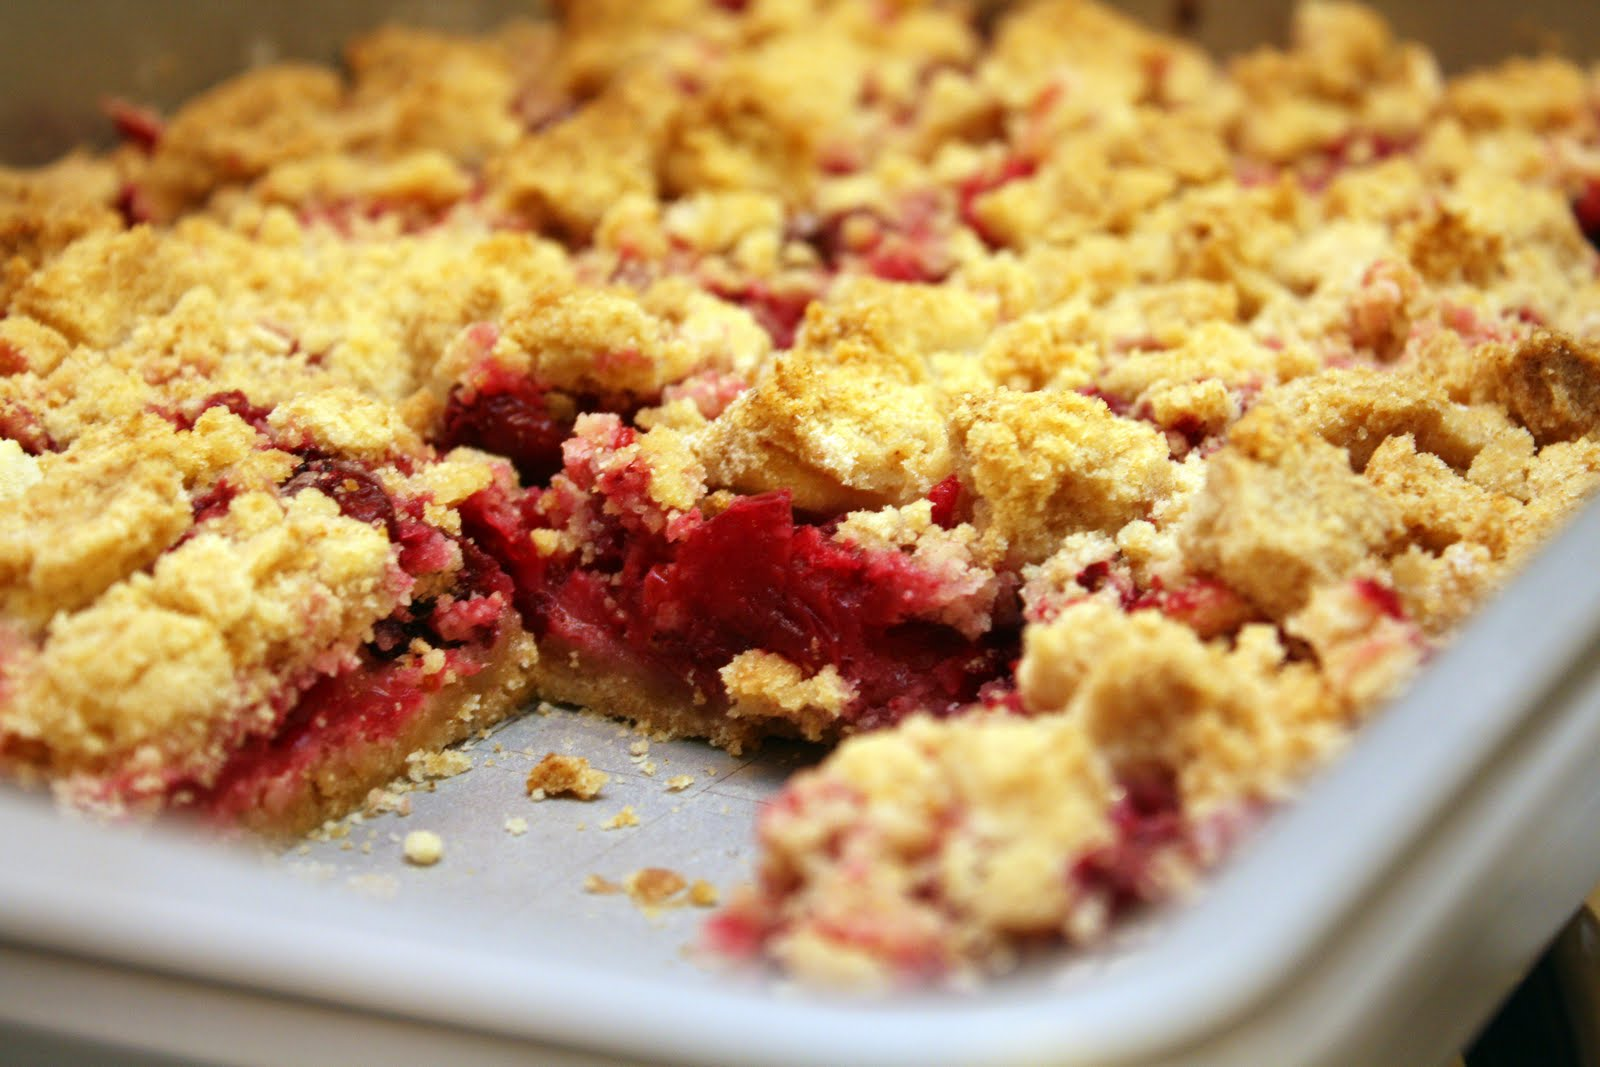 The Doctor's Dishes, Desserts & Decor: Cranberry Crumb Bars